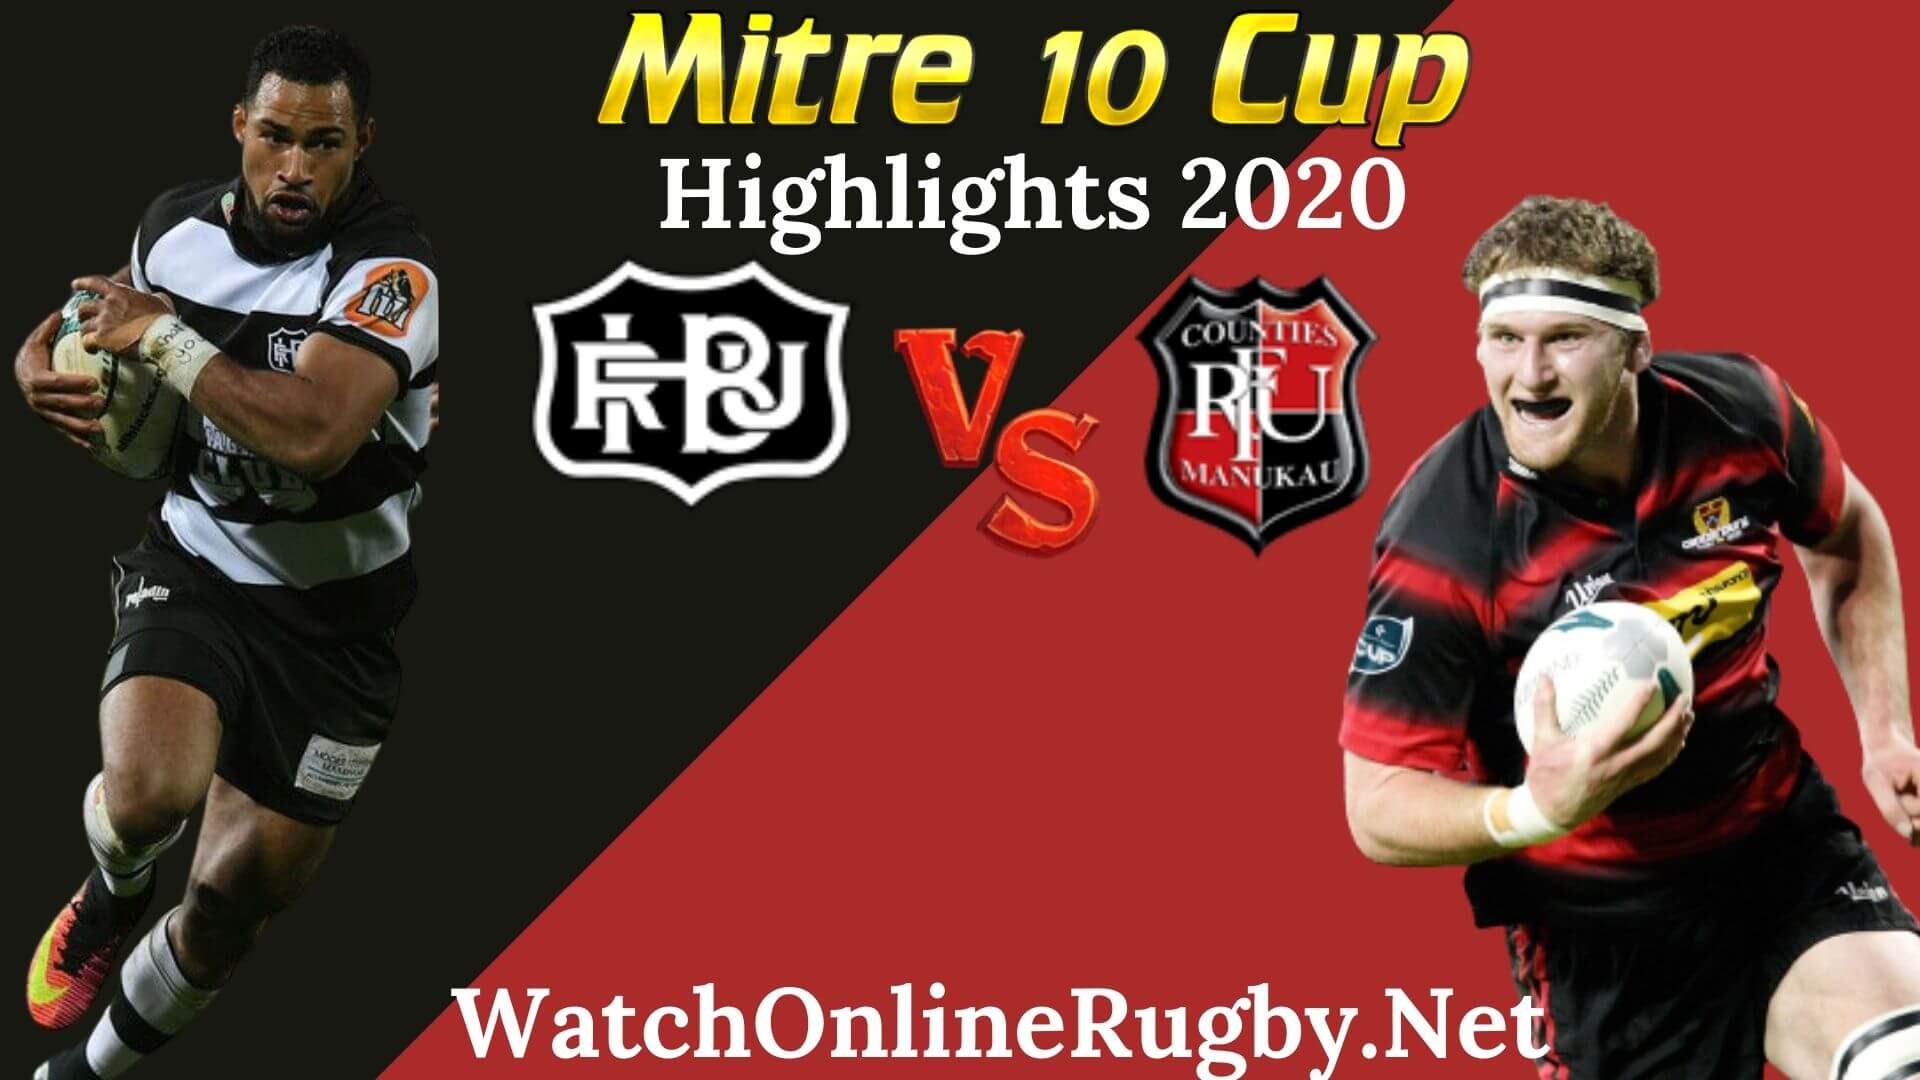 Hawkes Bay vs Counties Manukau RD 2 Highlights 2020 M10 Cup